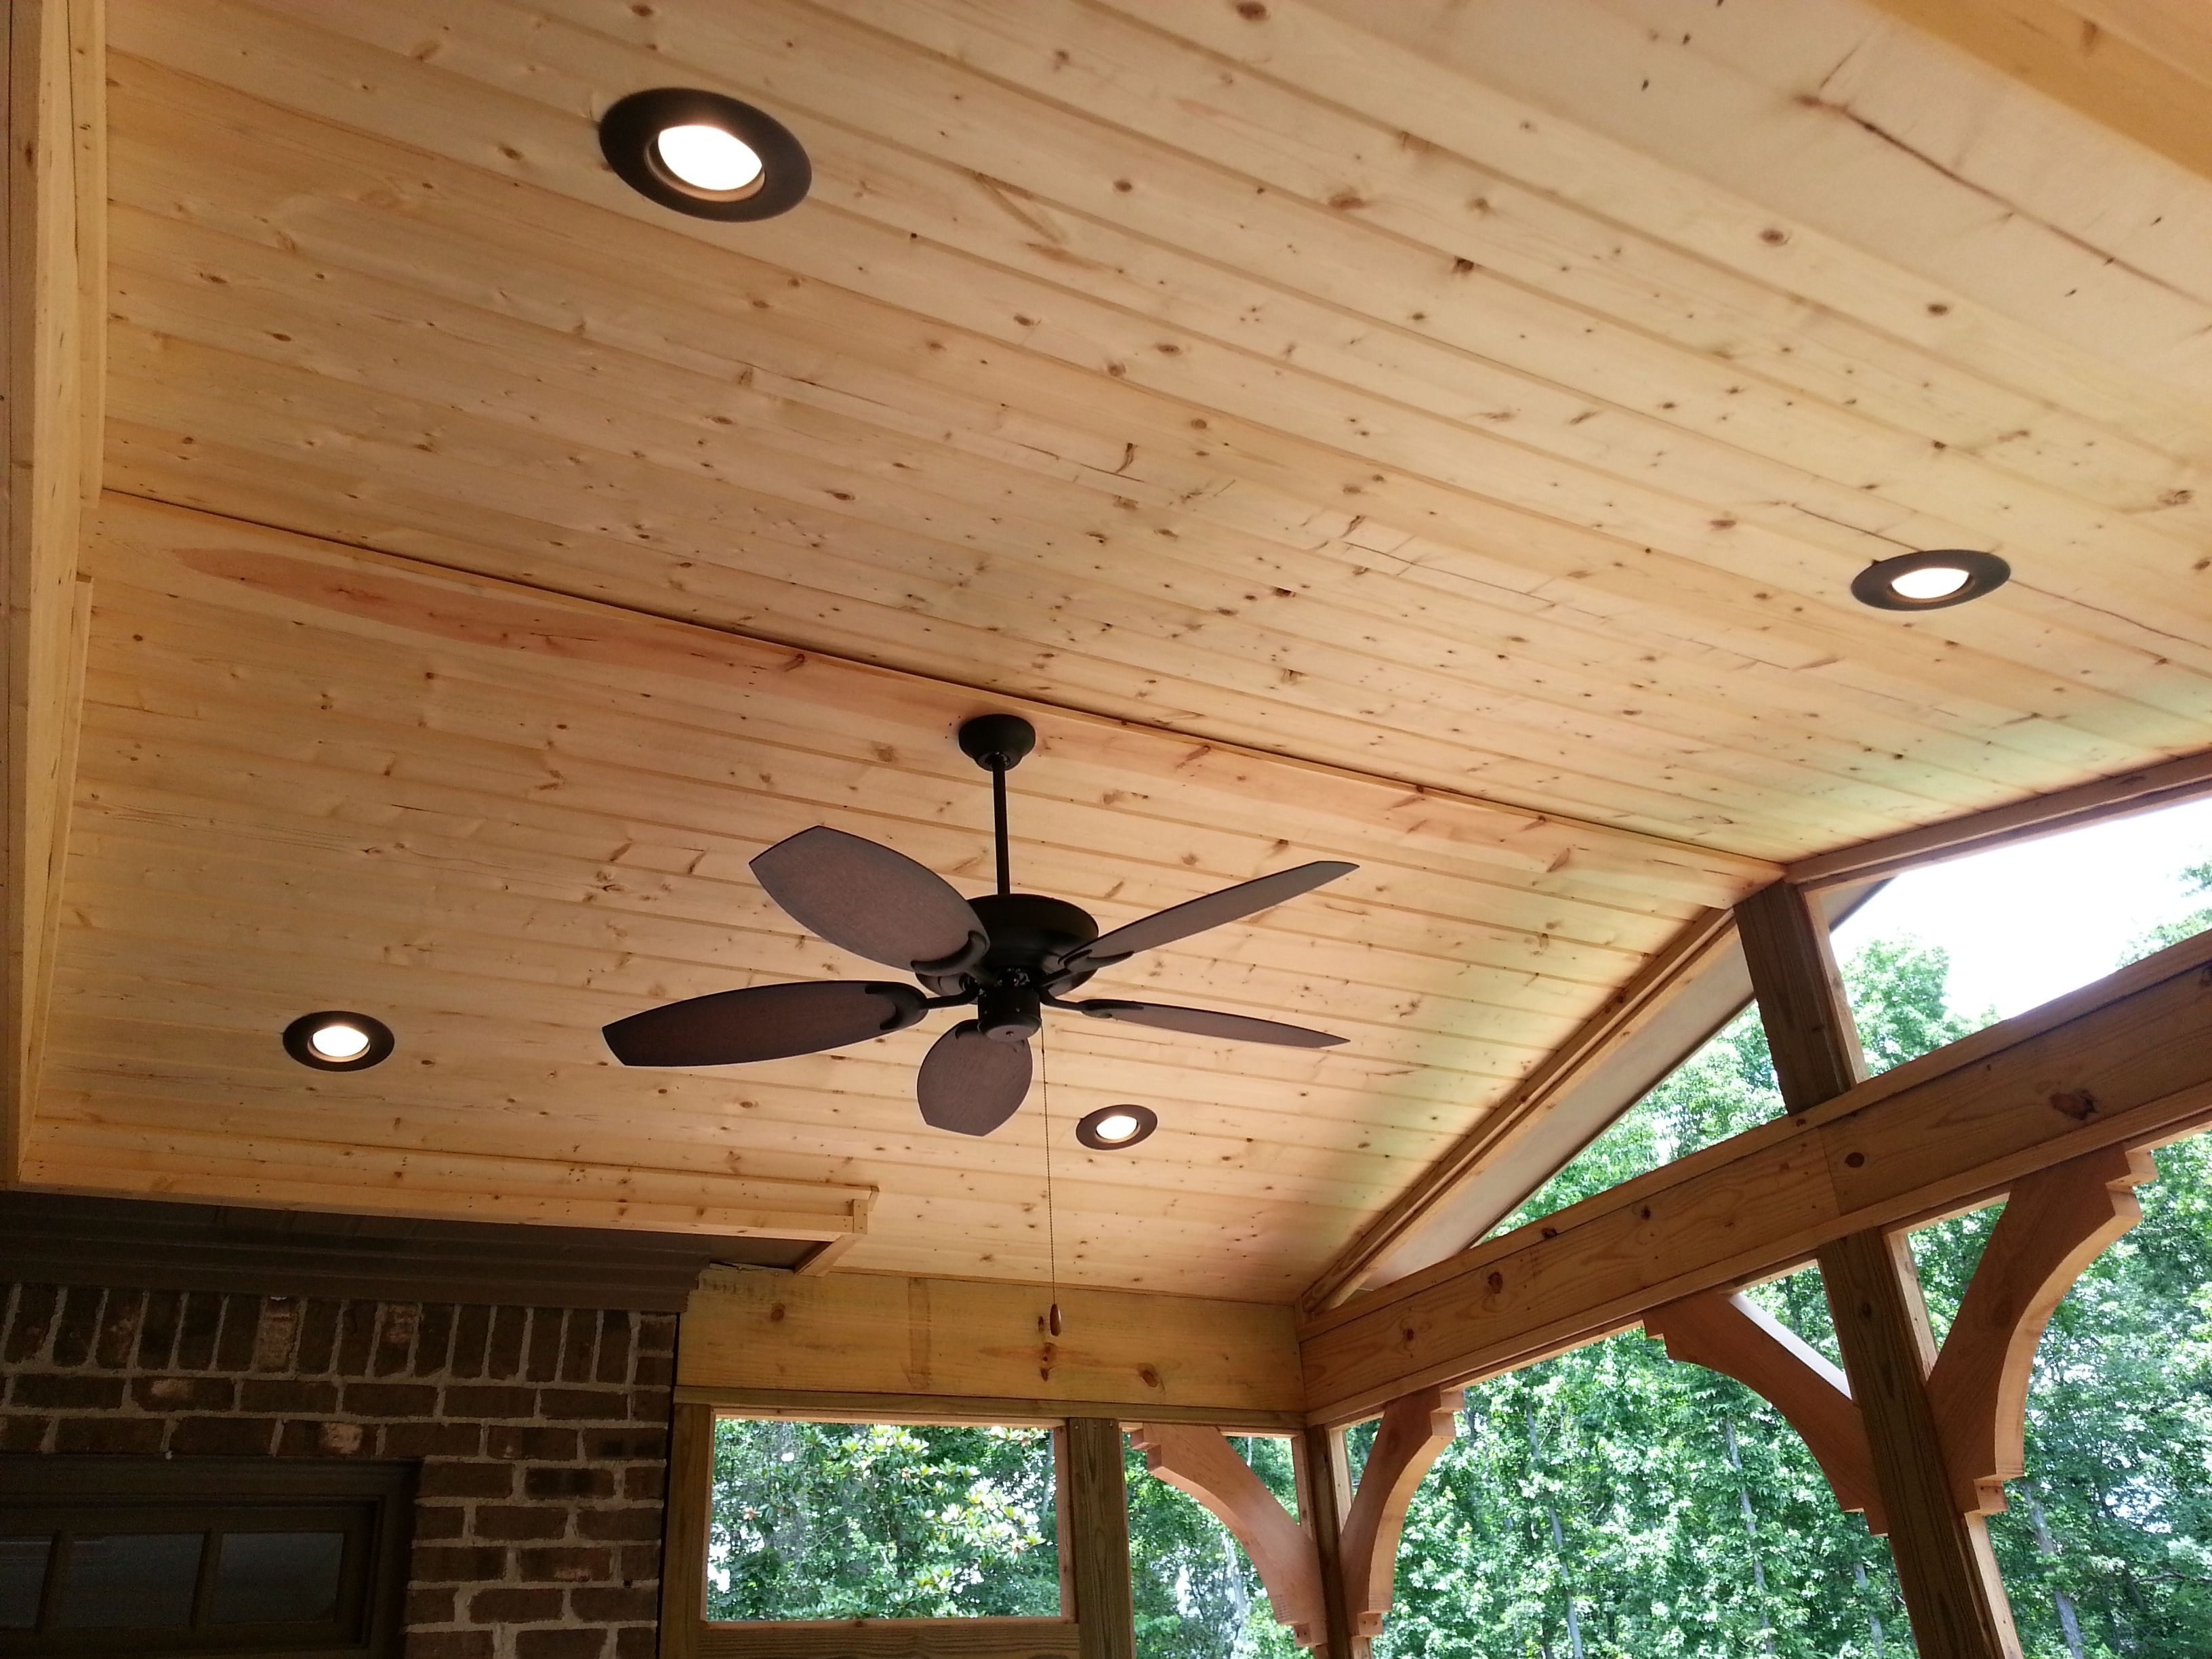 Outdoor Ceiling Fans For Screened Porches Pertaining To Well Liked Finished Ceiling With Ceiling Fan And Can Lights – Design Ideas (View 14 of 20)